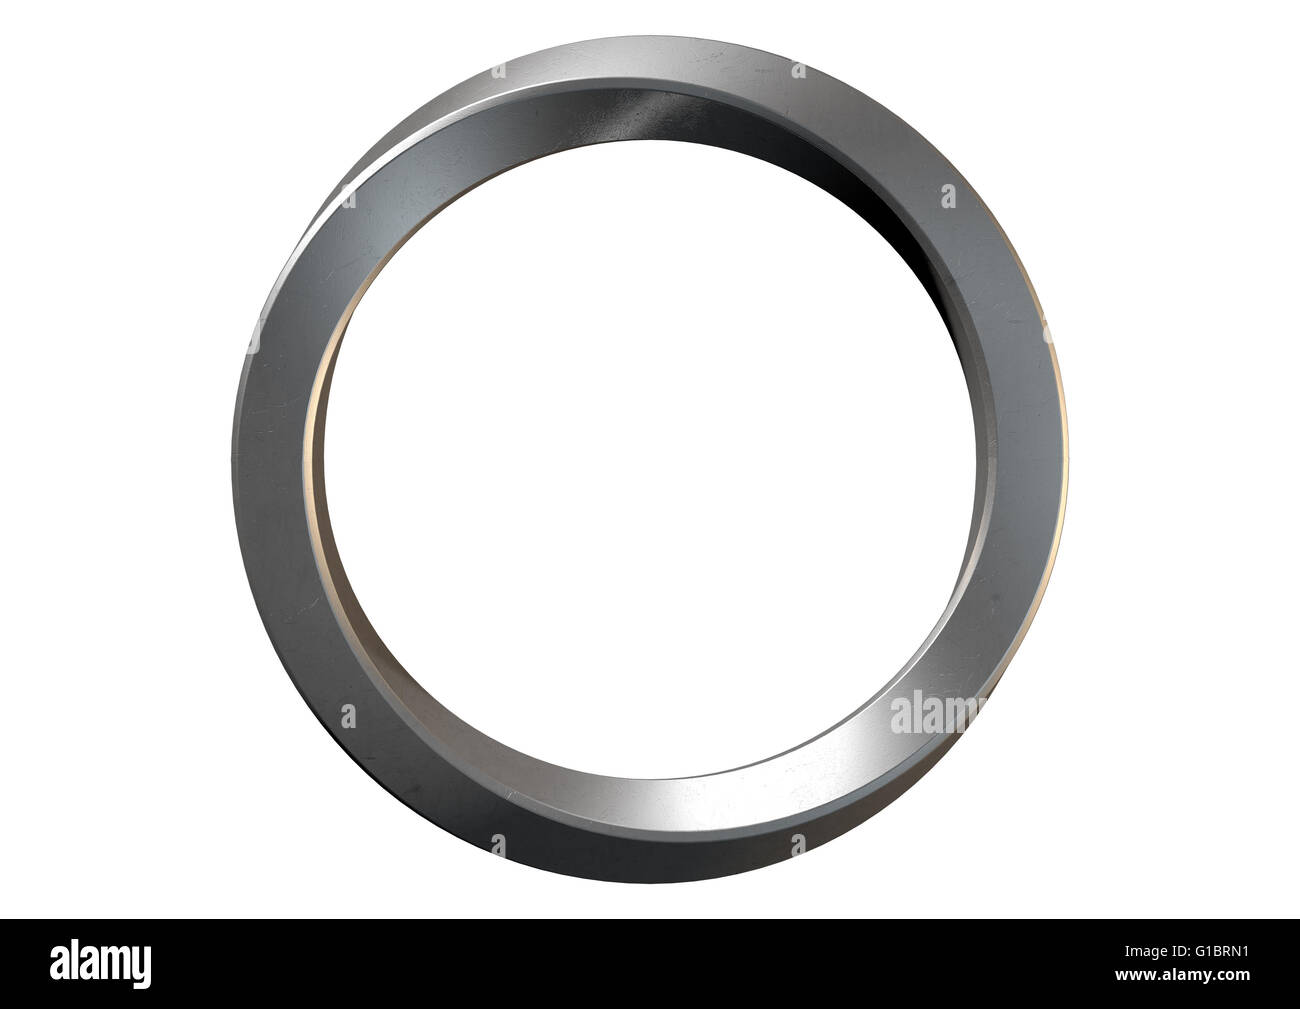 A 3D rendering of an infinity symbol ring made of shiny steel on an isolated white studio background - Stock Image